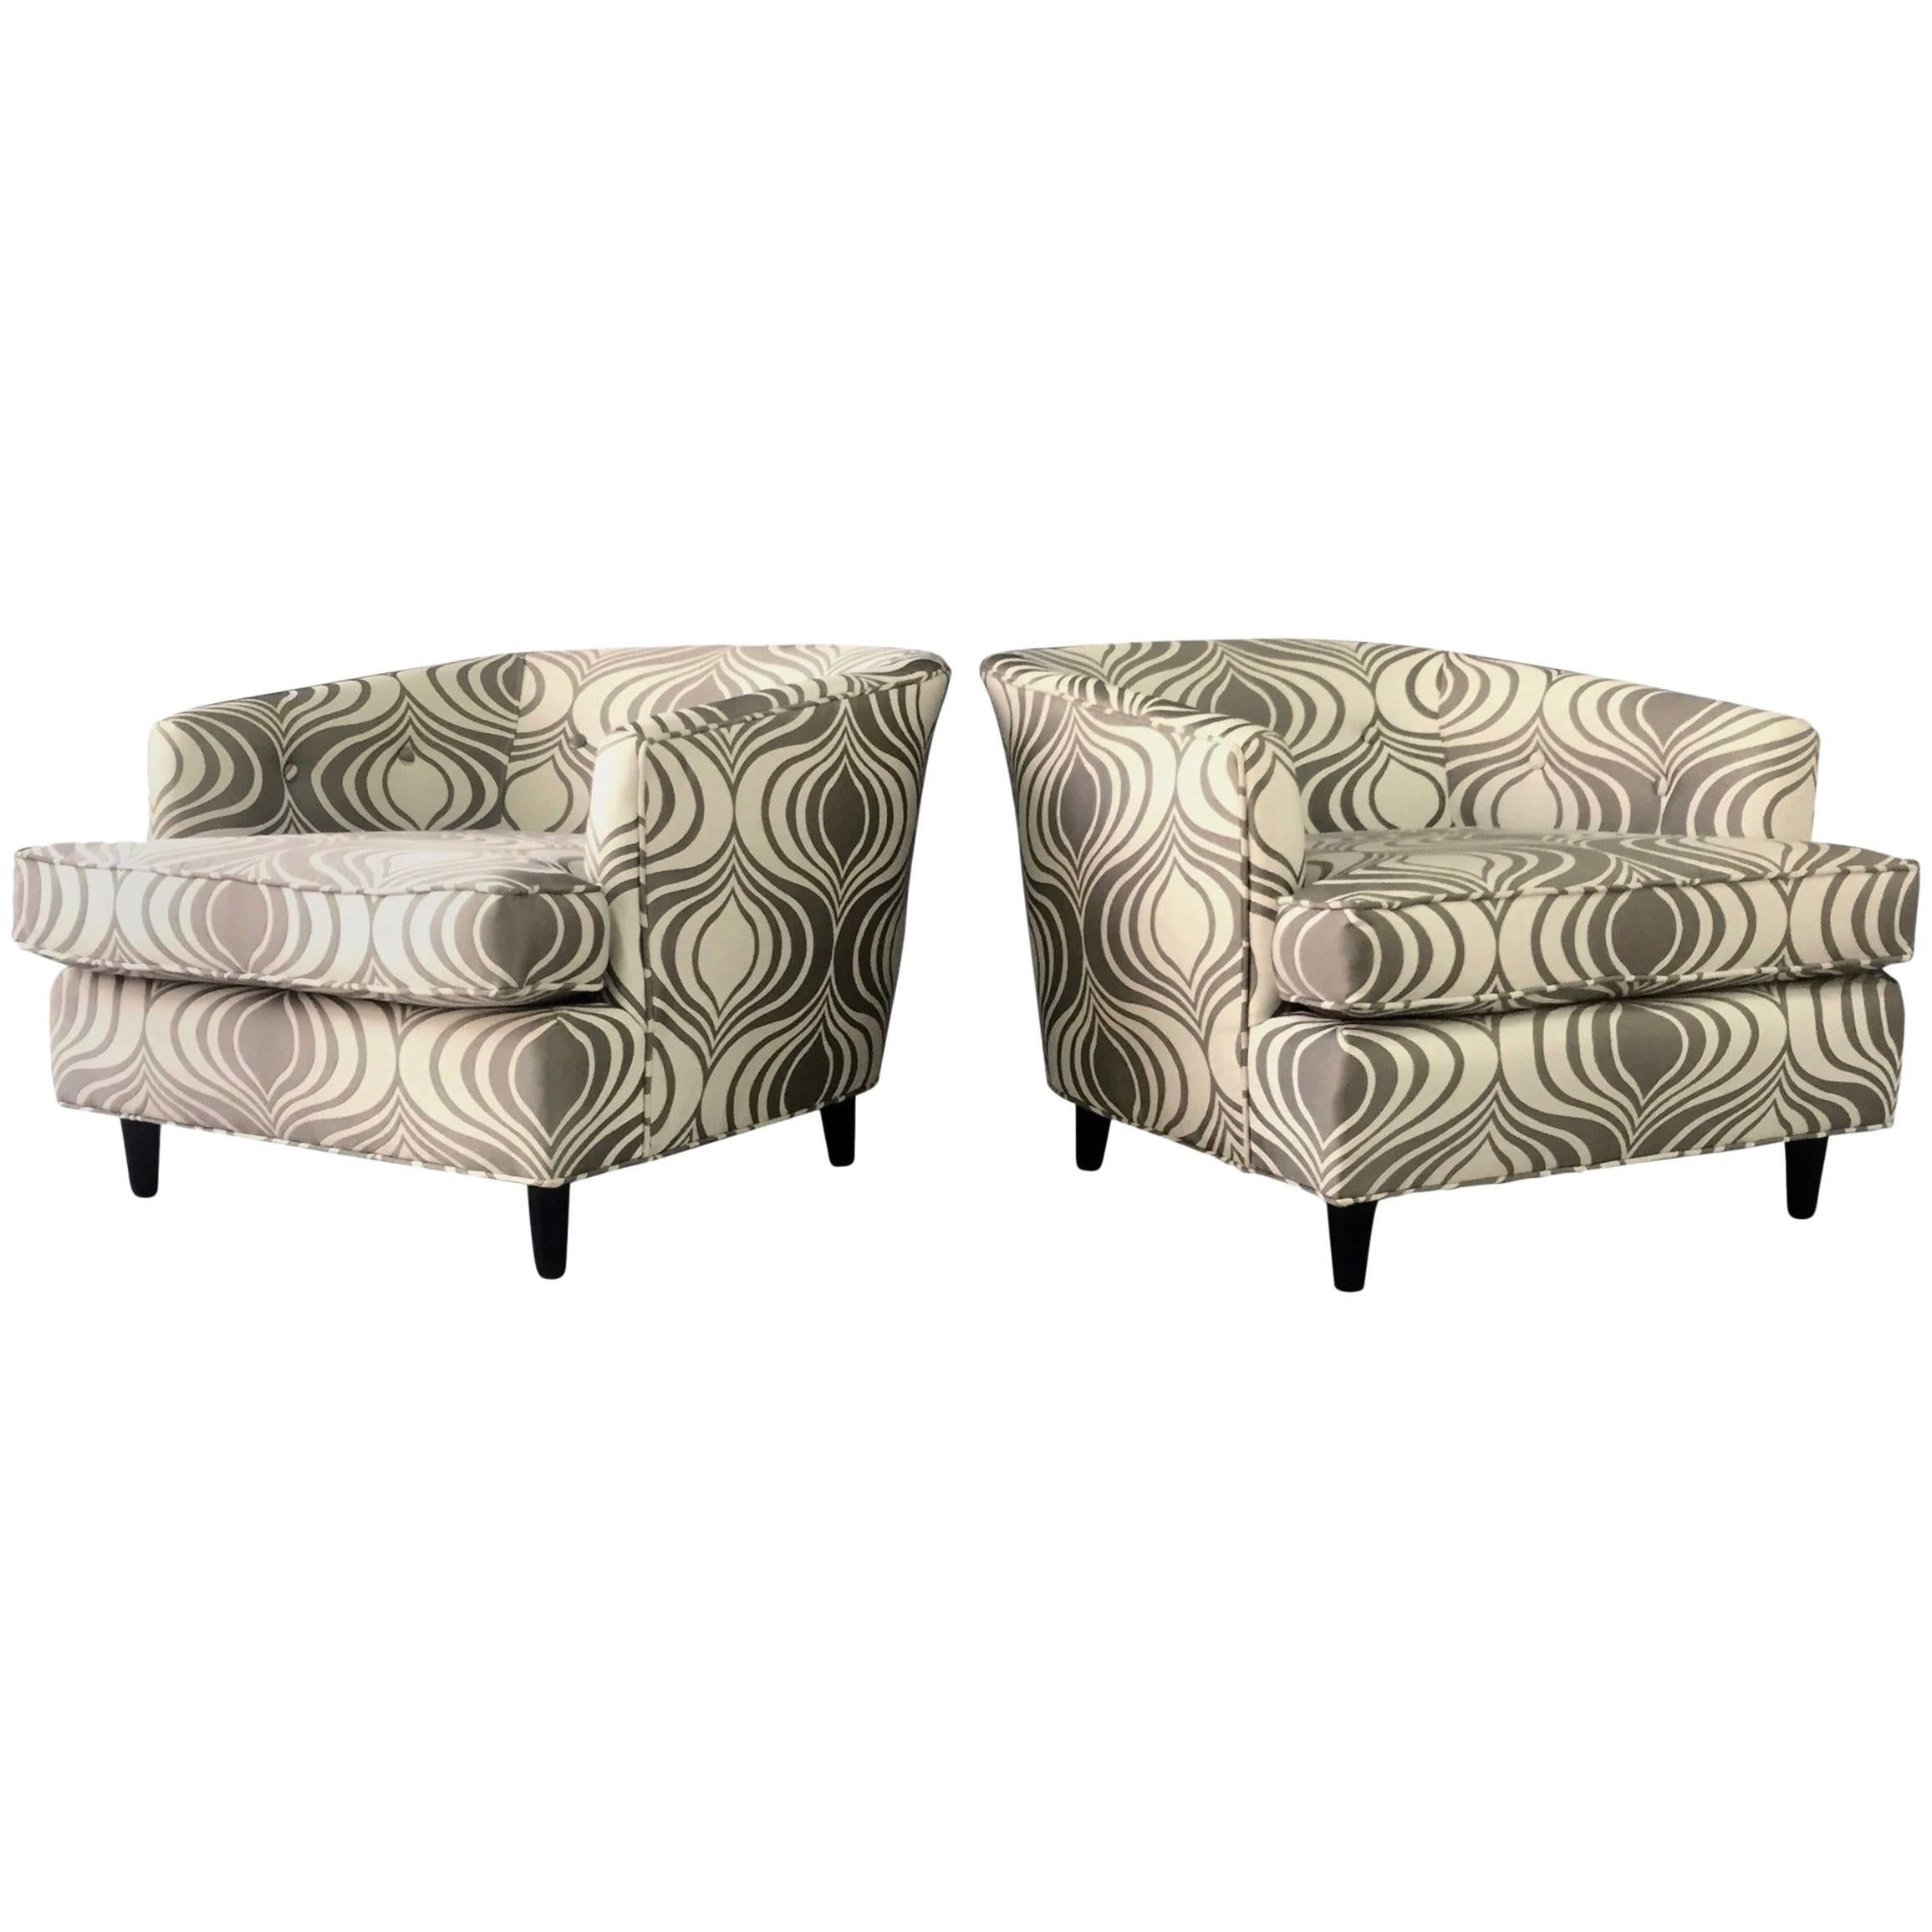 Milo Baughman Style Pair of Barrel Back Lounge Chairs Midcentury